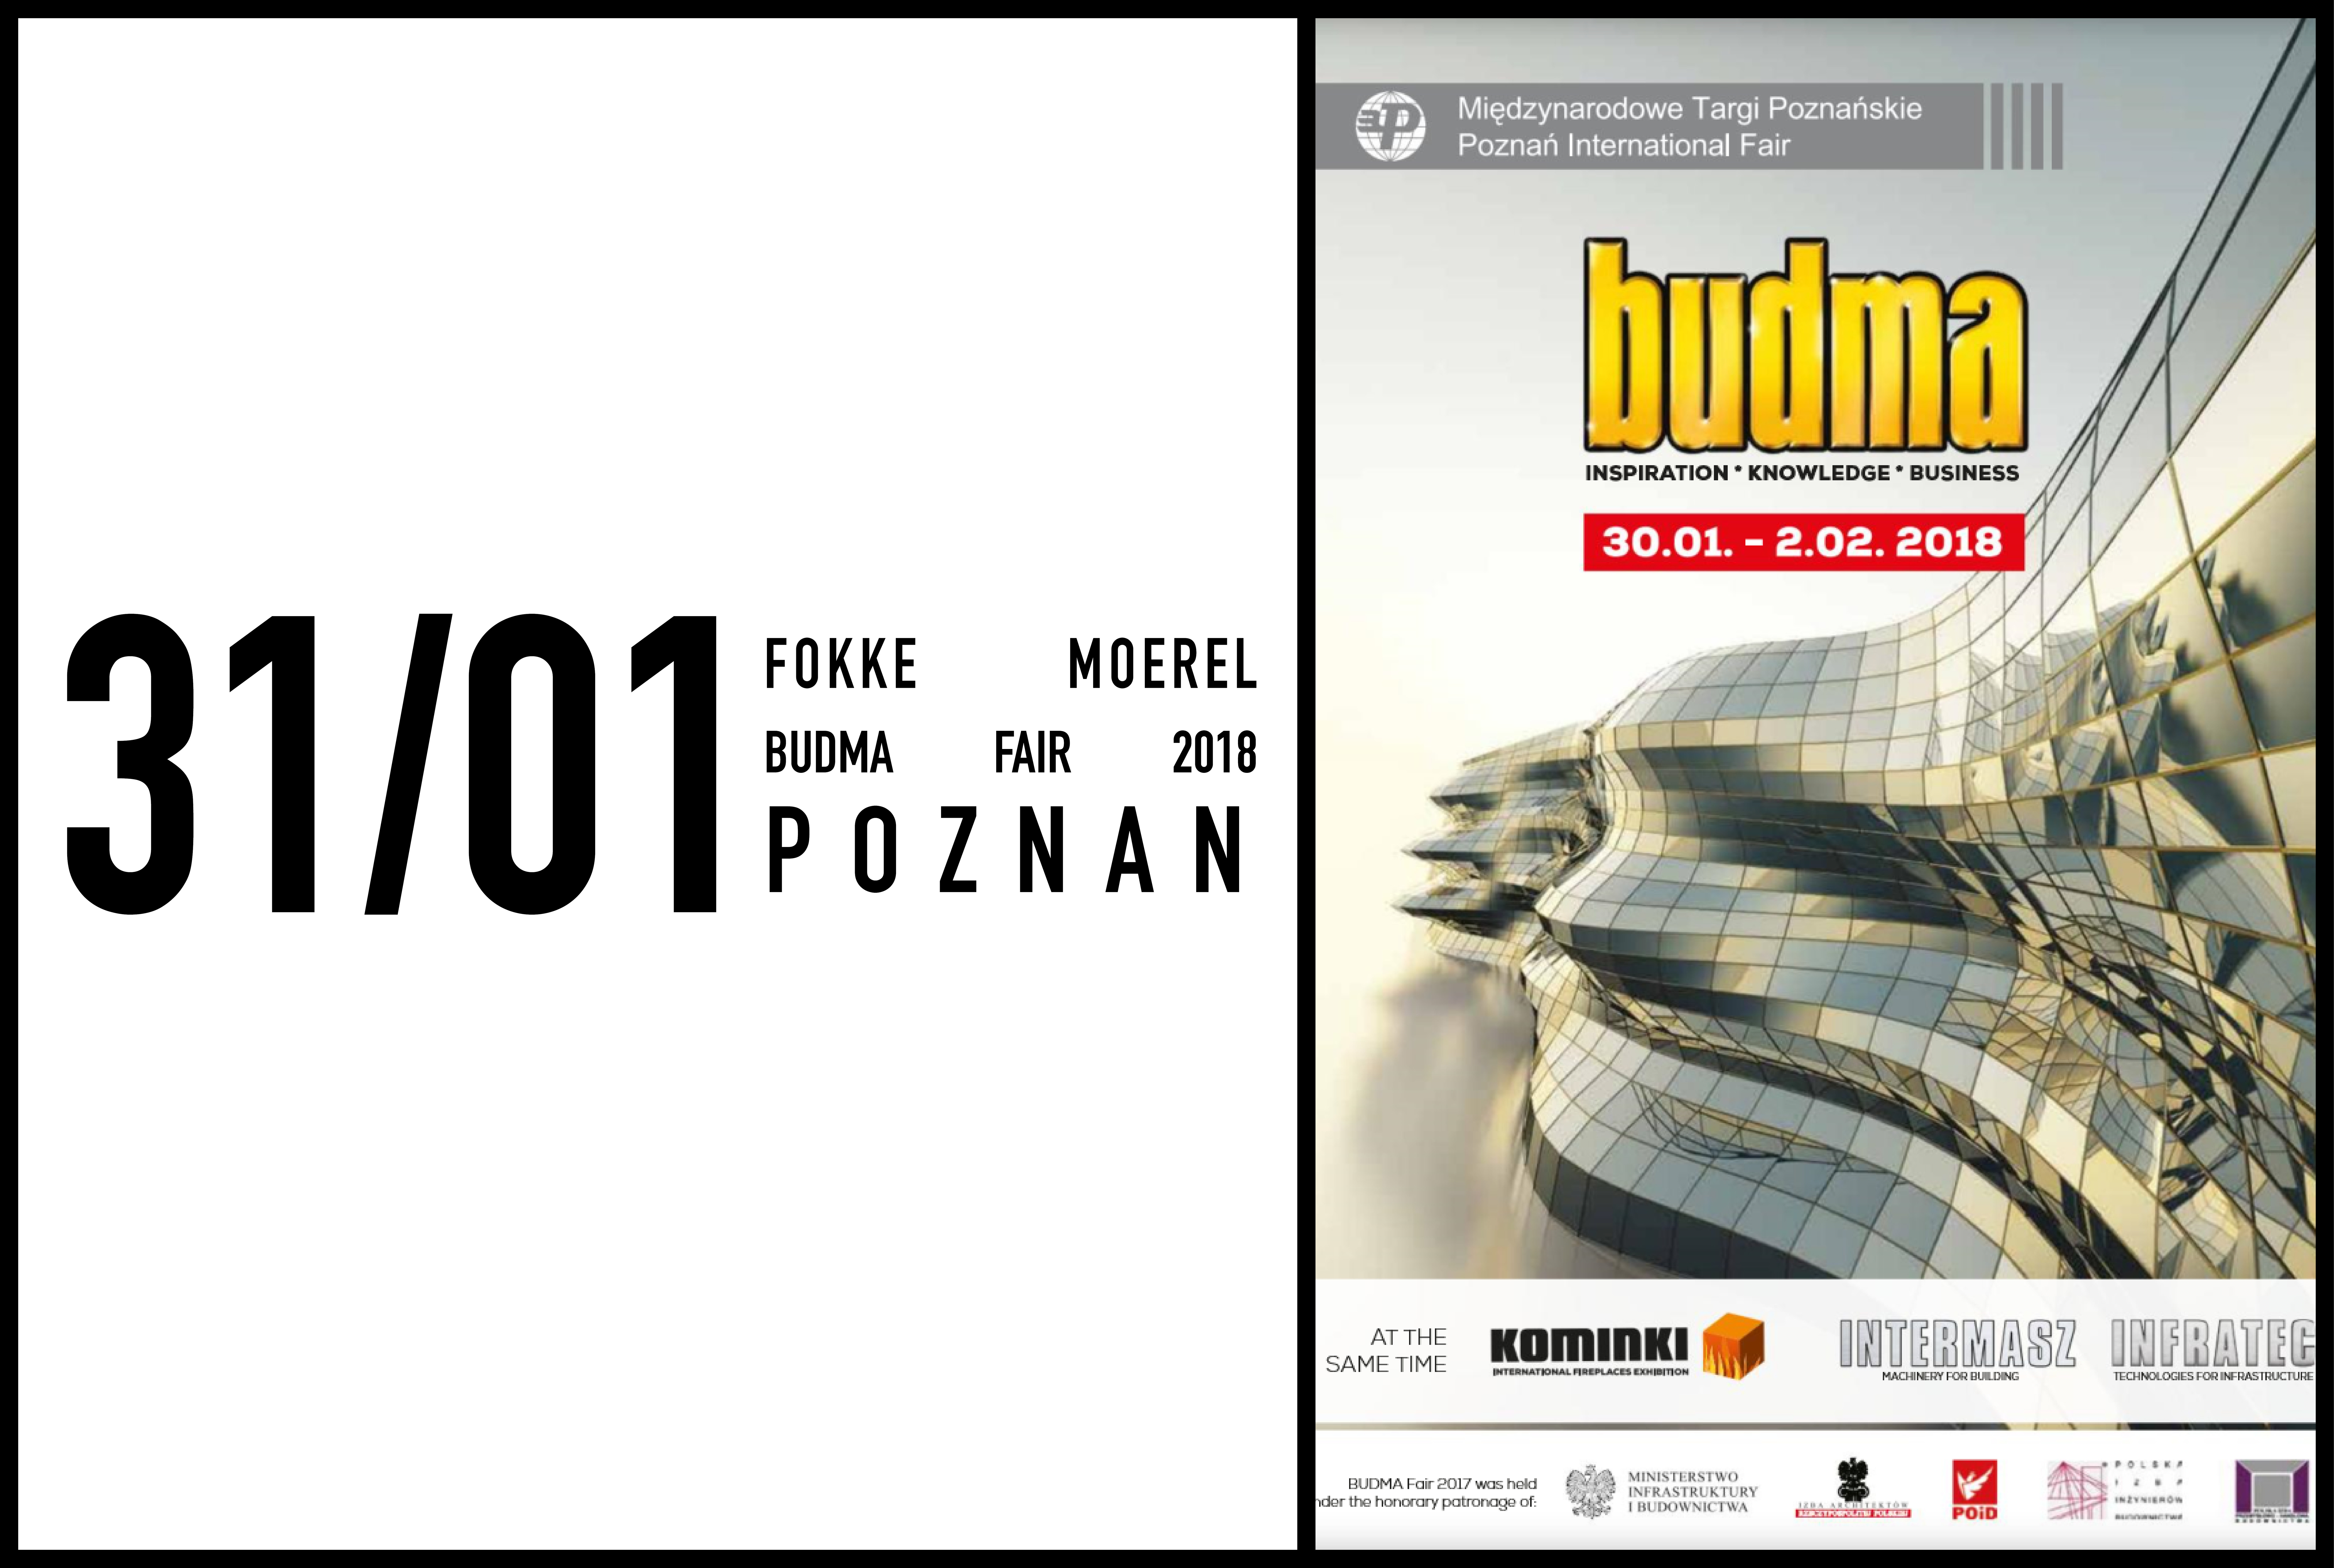 Fokke Moerel to present on 31 January at the 2018 Budma Fair in Poznan, Poland